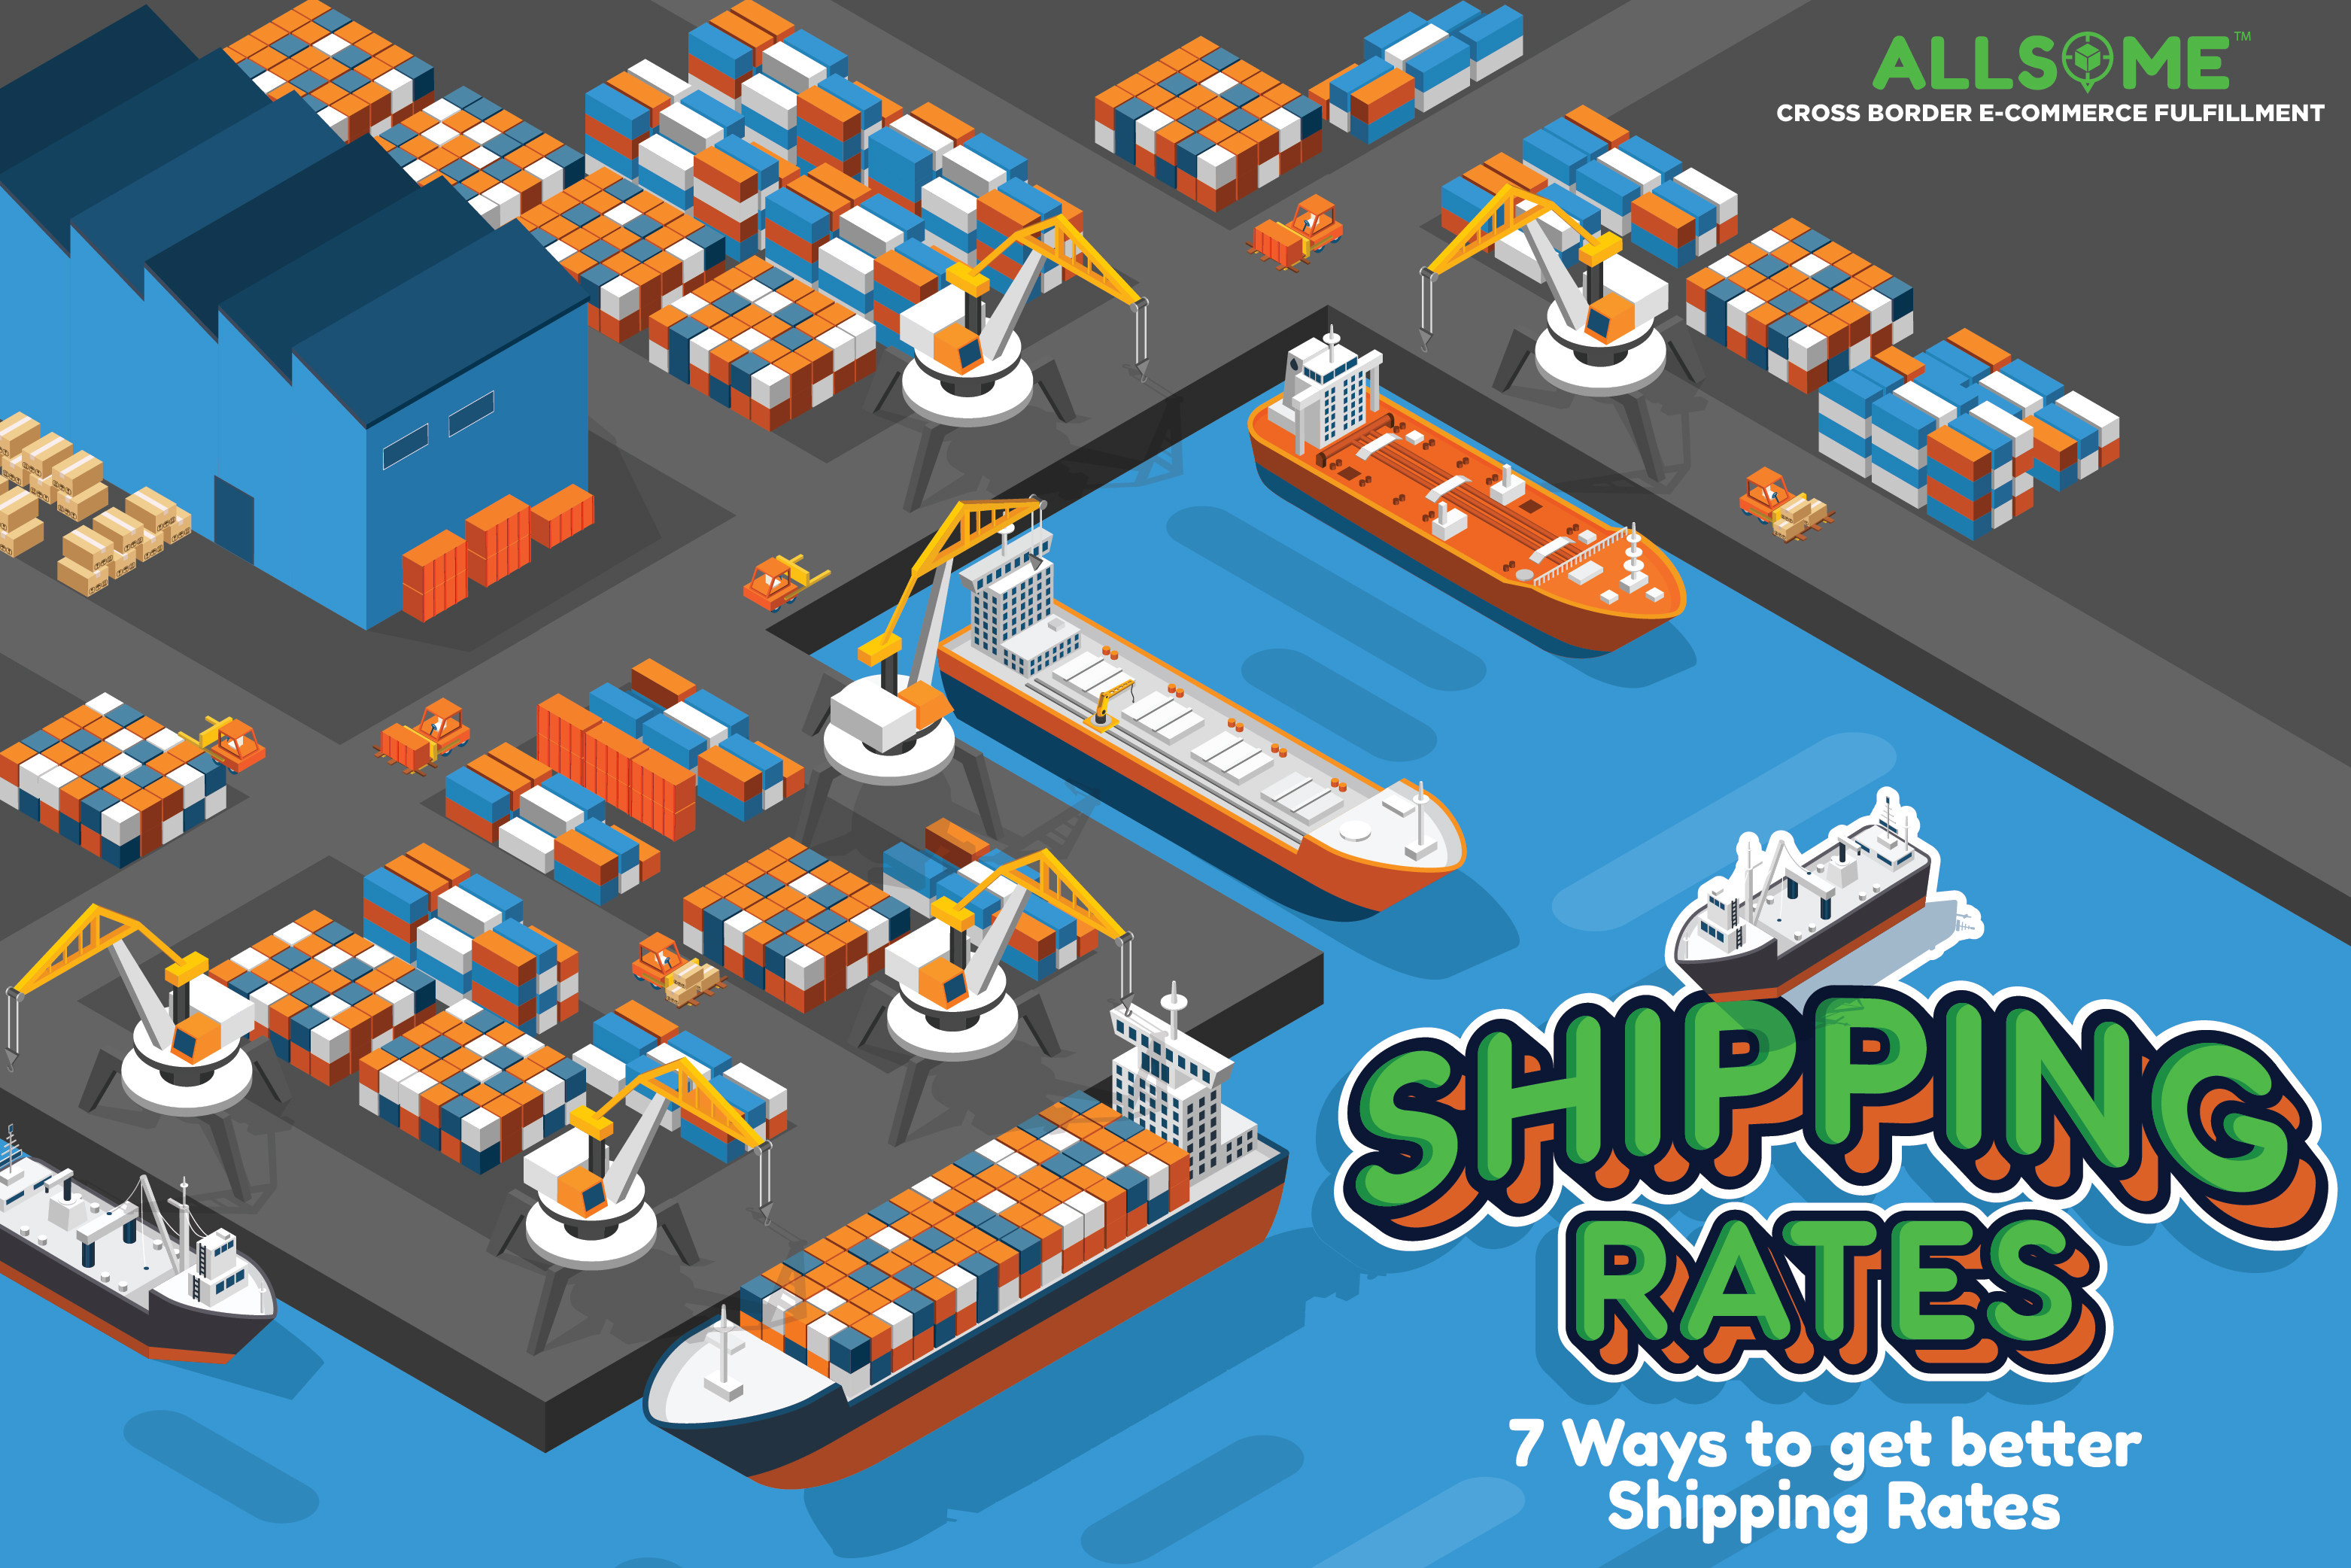 7 Ways to get better Shipping Rates